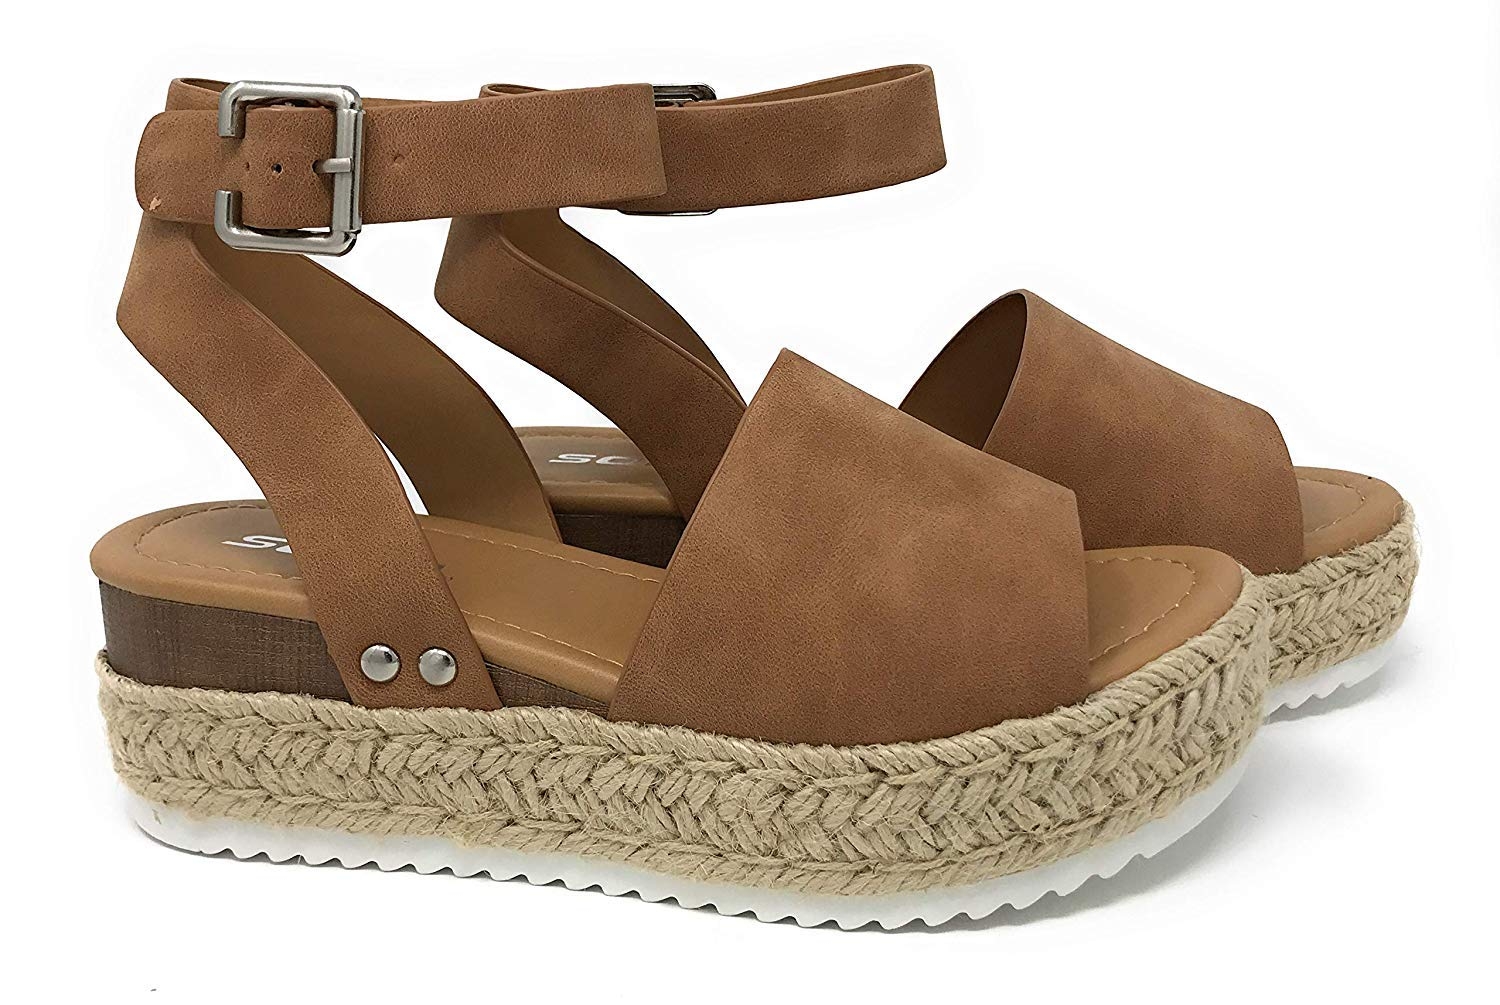 Soda Topic Tan Casual Espadrilles Flatform Studded Wedge Ankle Strap Sandals (7.5)